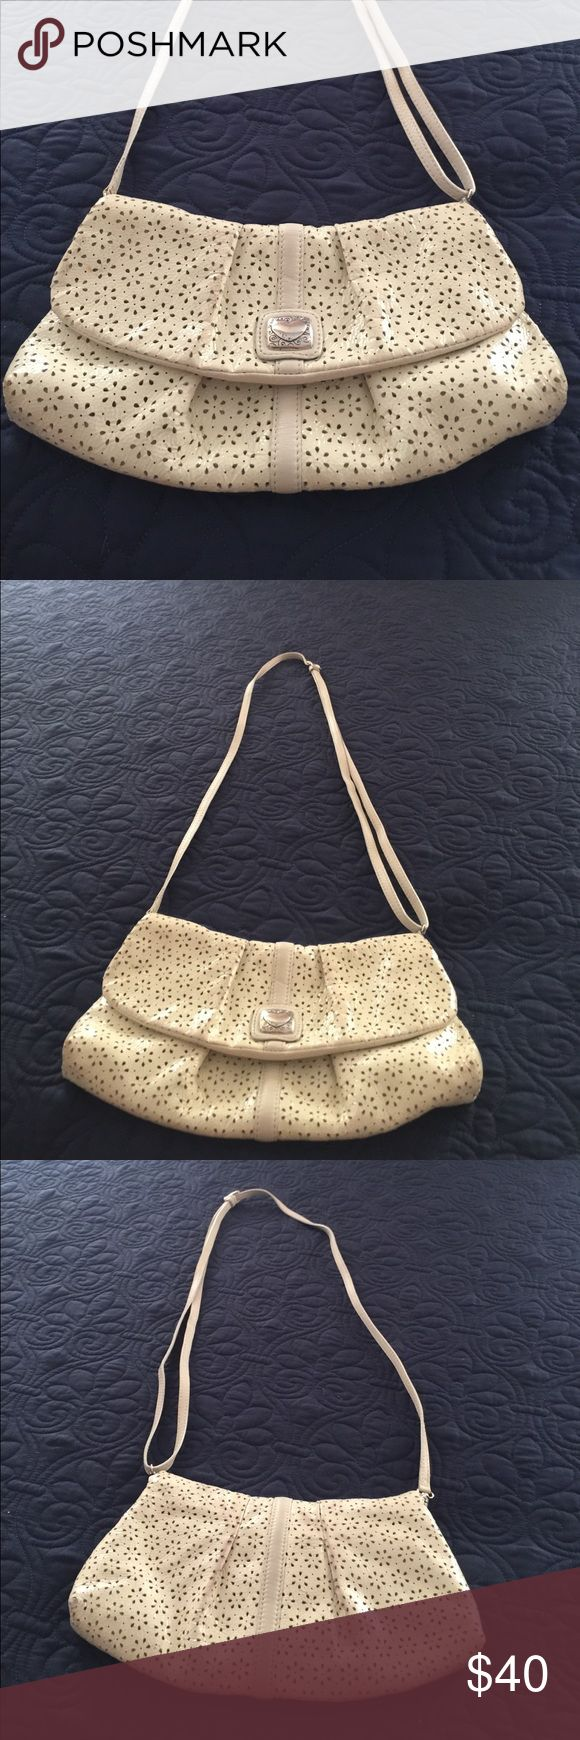 Brighton cross body cream color Dooney & Bourke cross body - can also be used as a wristlet. Cream color with black and white interior pattern.  Used a dozen times, non smoker.  Small discoloration on back side of purse Brighton Bags Crossbody Bags